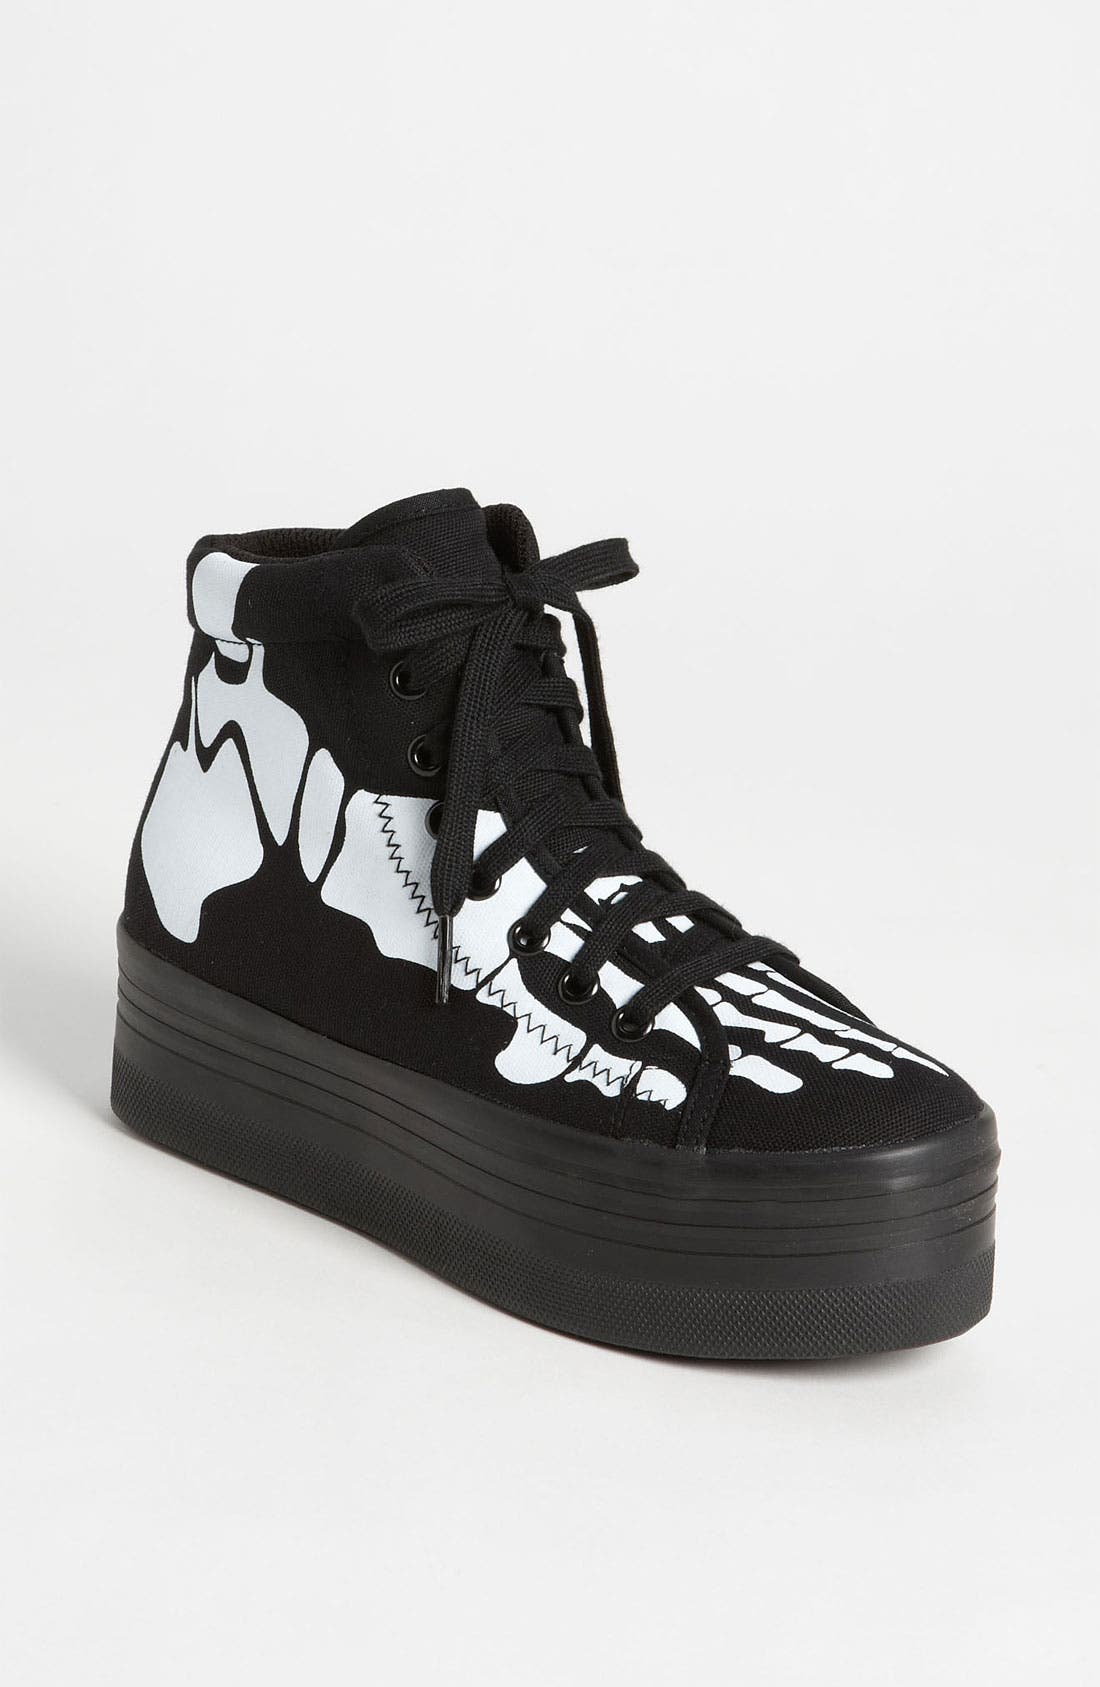 Alternate Image 1 Selected - Jeffrey Campbell 'Homg Skeleton' Sneaker